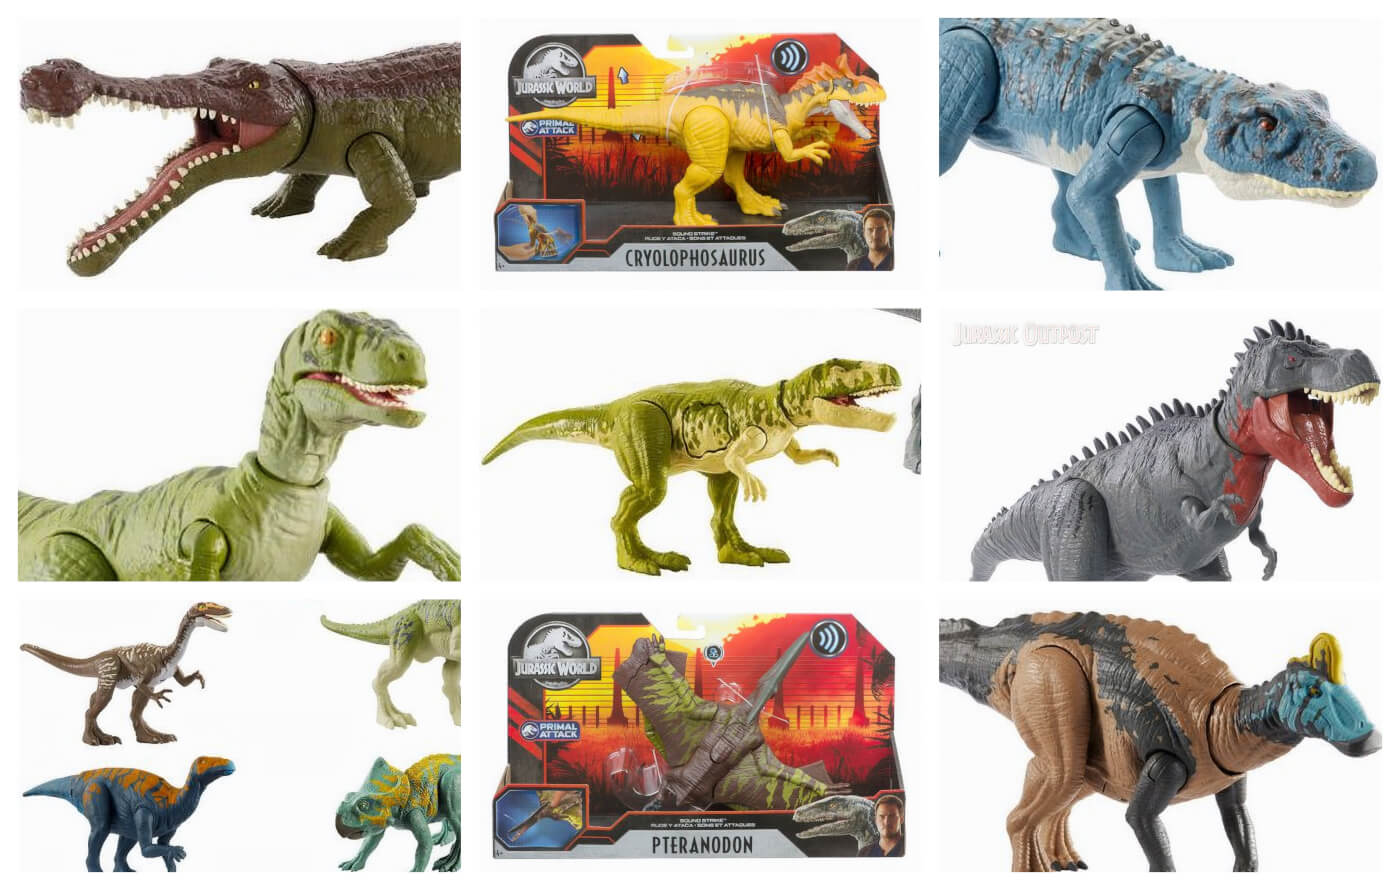 Huge Assortment of Mattel's 2020 Jurassic World Primal Attack Toys Revealed!